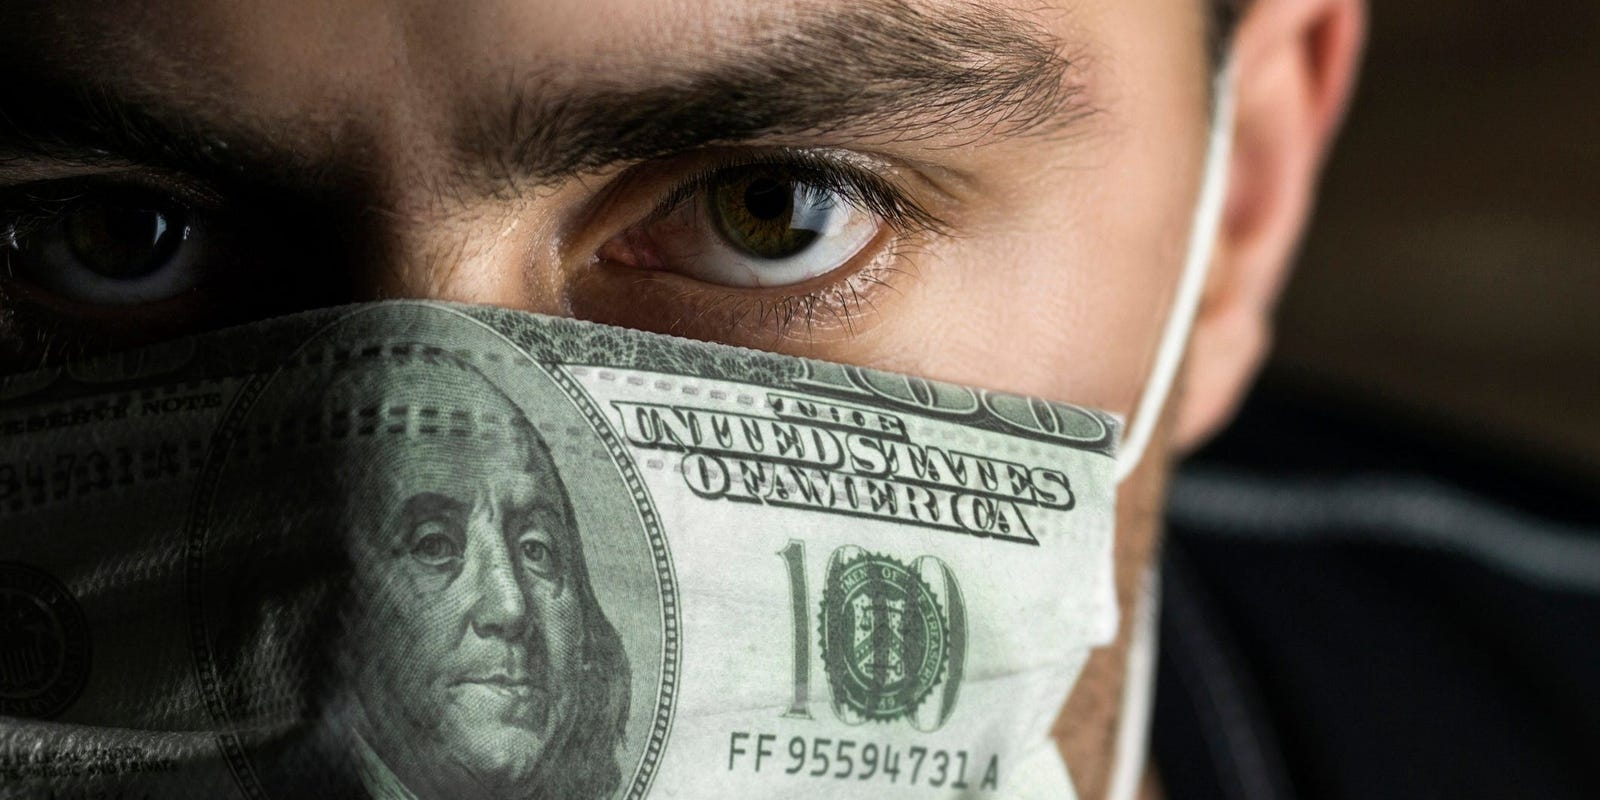 Should I wear a mask? Differing opinions create clashes